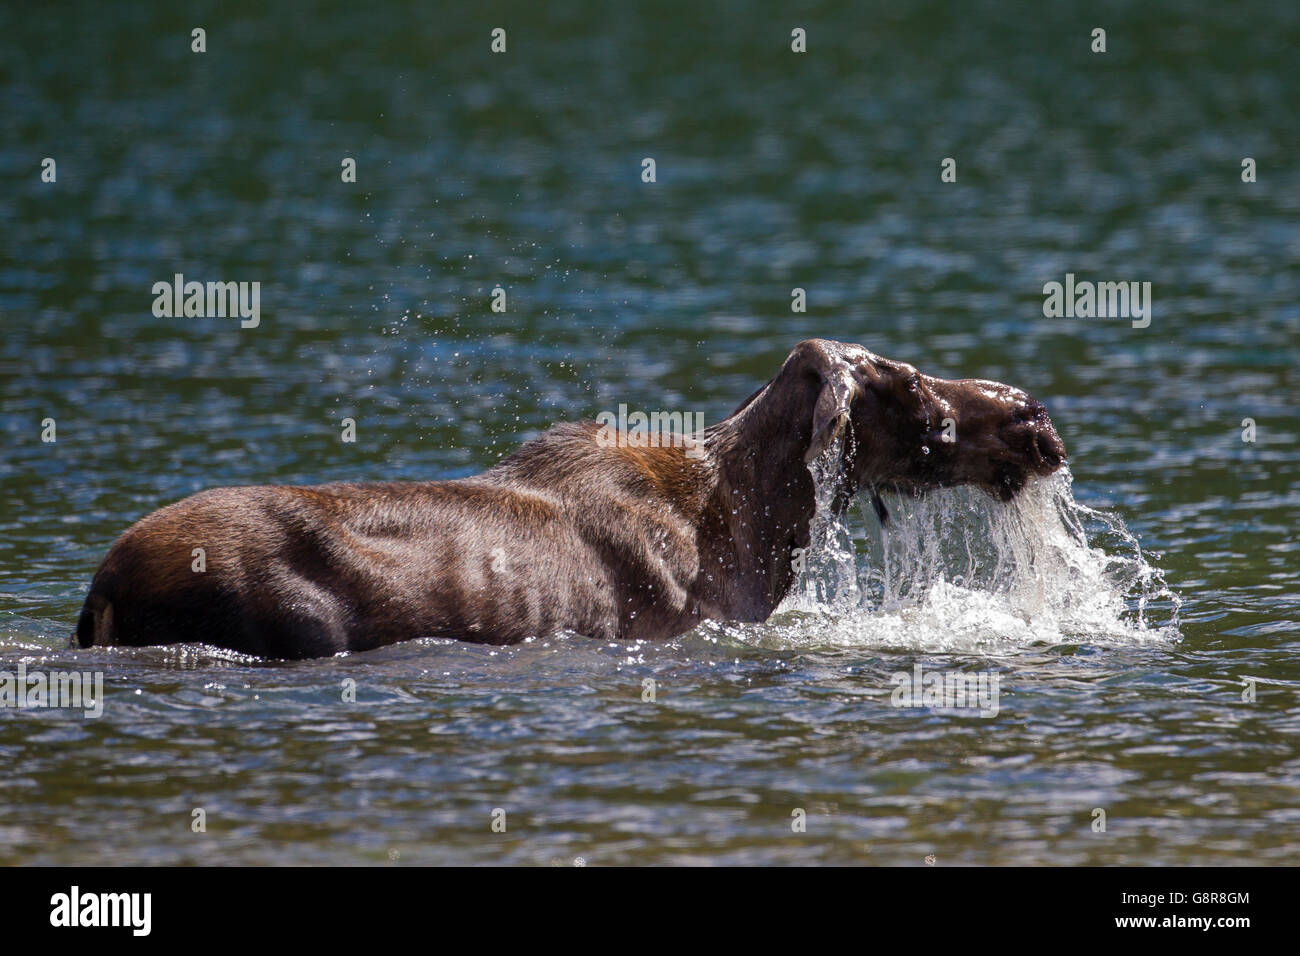 Moose (Alces alces) cow surfacing after feeding on underwater vegetation in lake - Stock Image